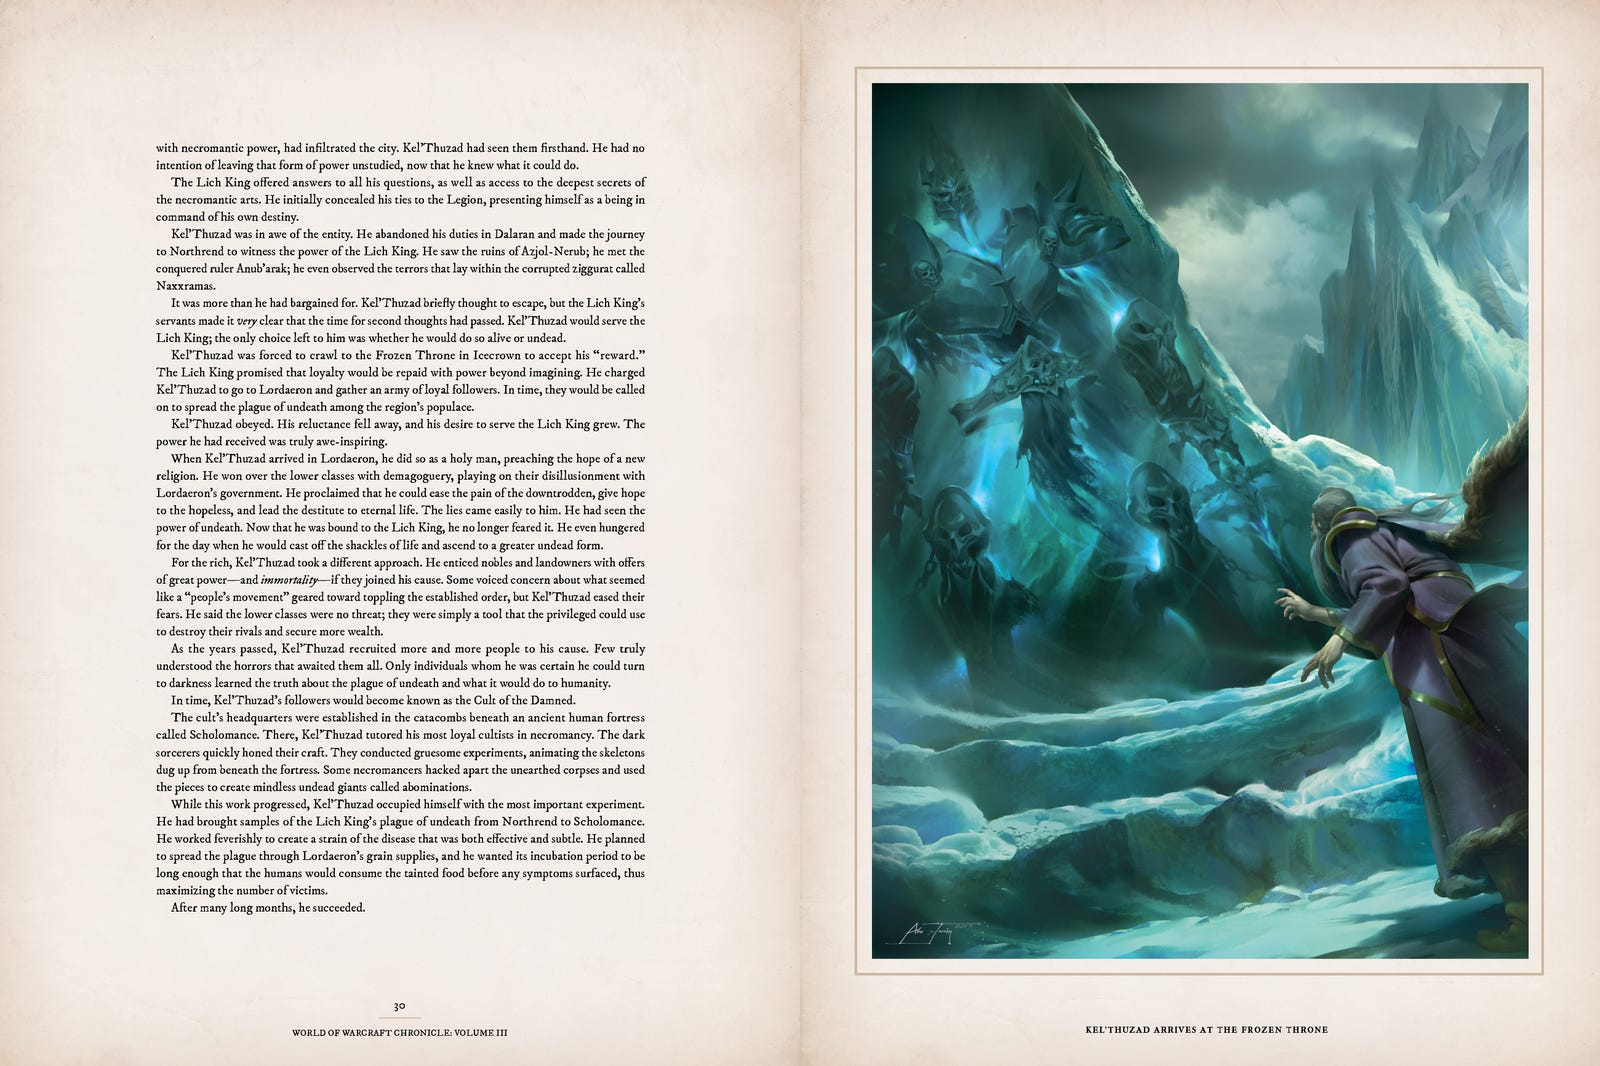 Pages 30 and 31, covering Kel'Thuzad falling under the thrall of the Lich King, like a dope.